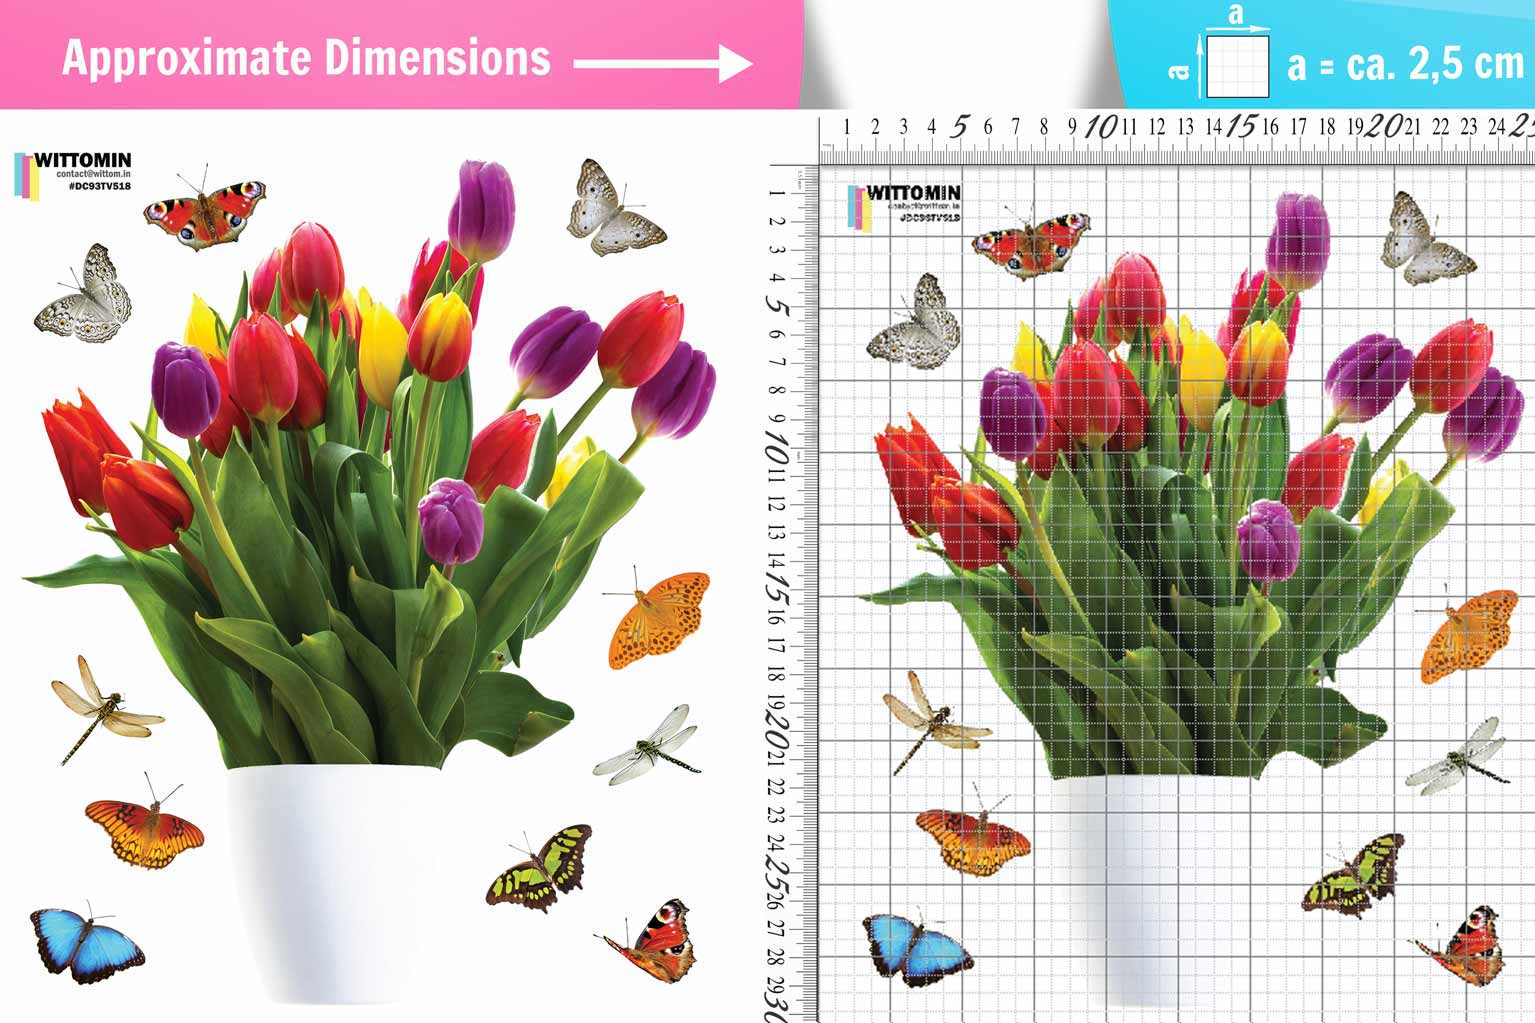 Vase with tulips and butterflies sticker set from Wittomin